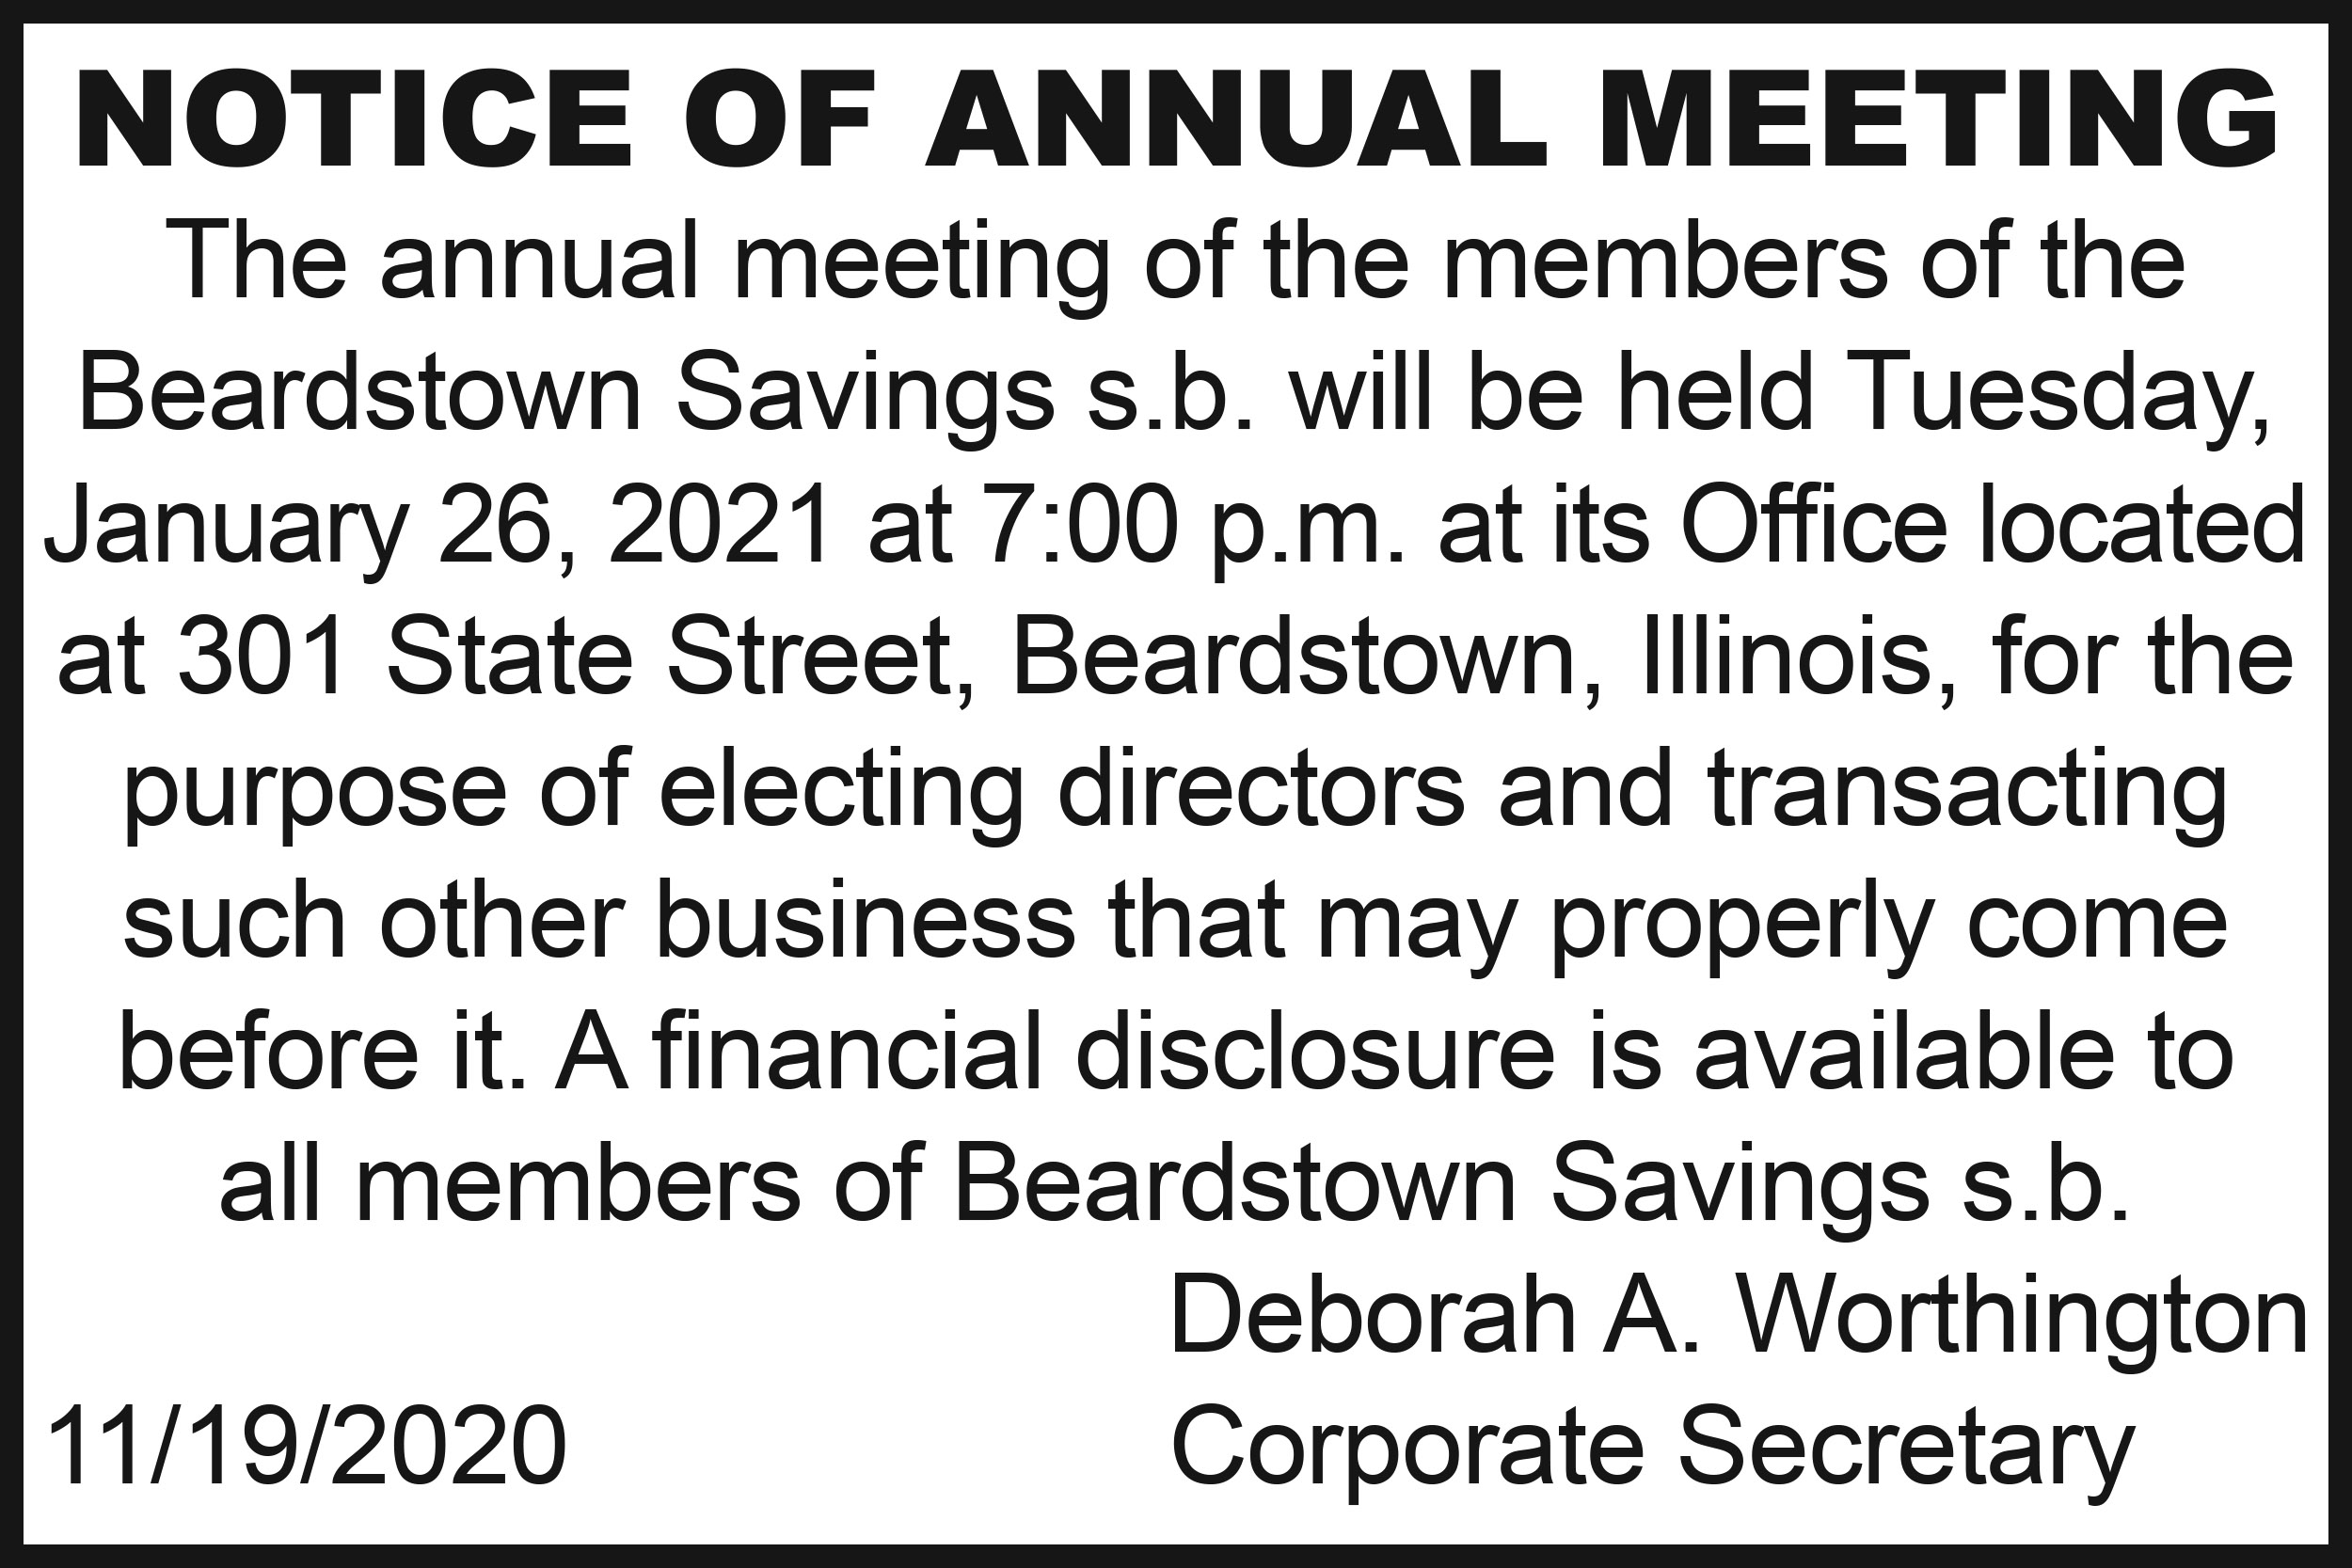 Beardstown Savings Bank annual meeting on Tuesday, January 26, 2021 at 7:00 pm at the bank office at 301 State St., Beardstown.